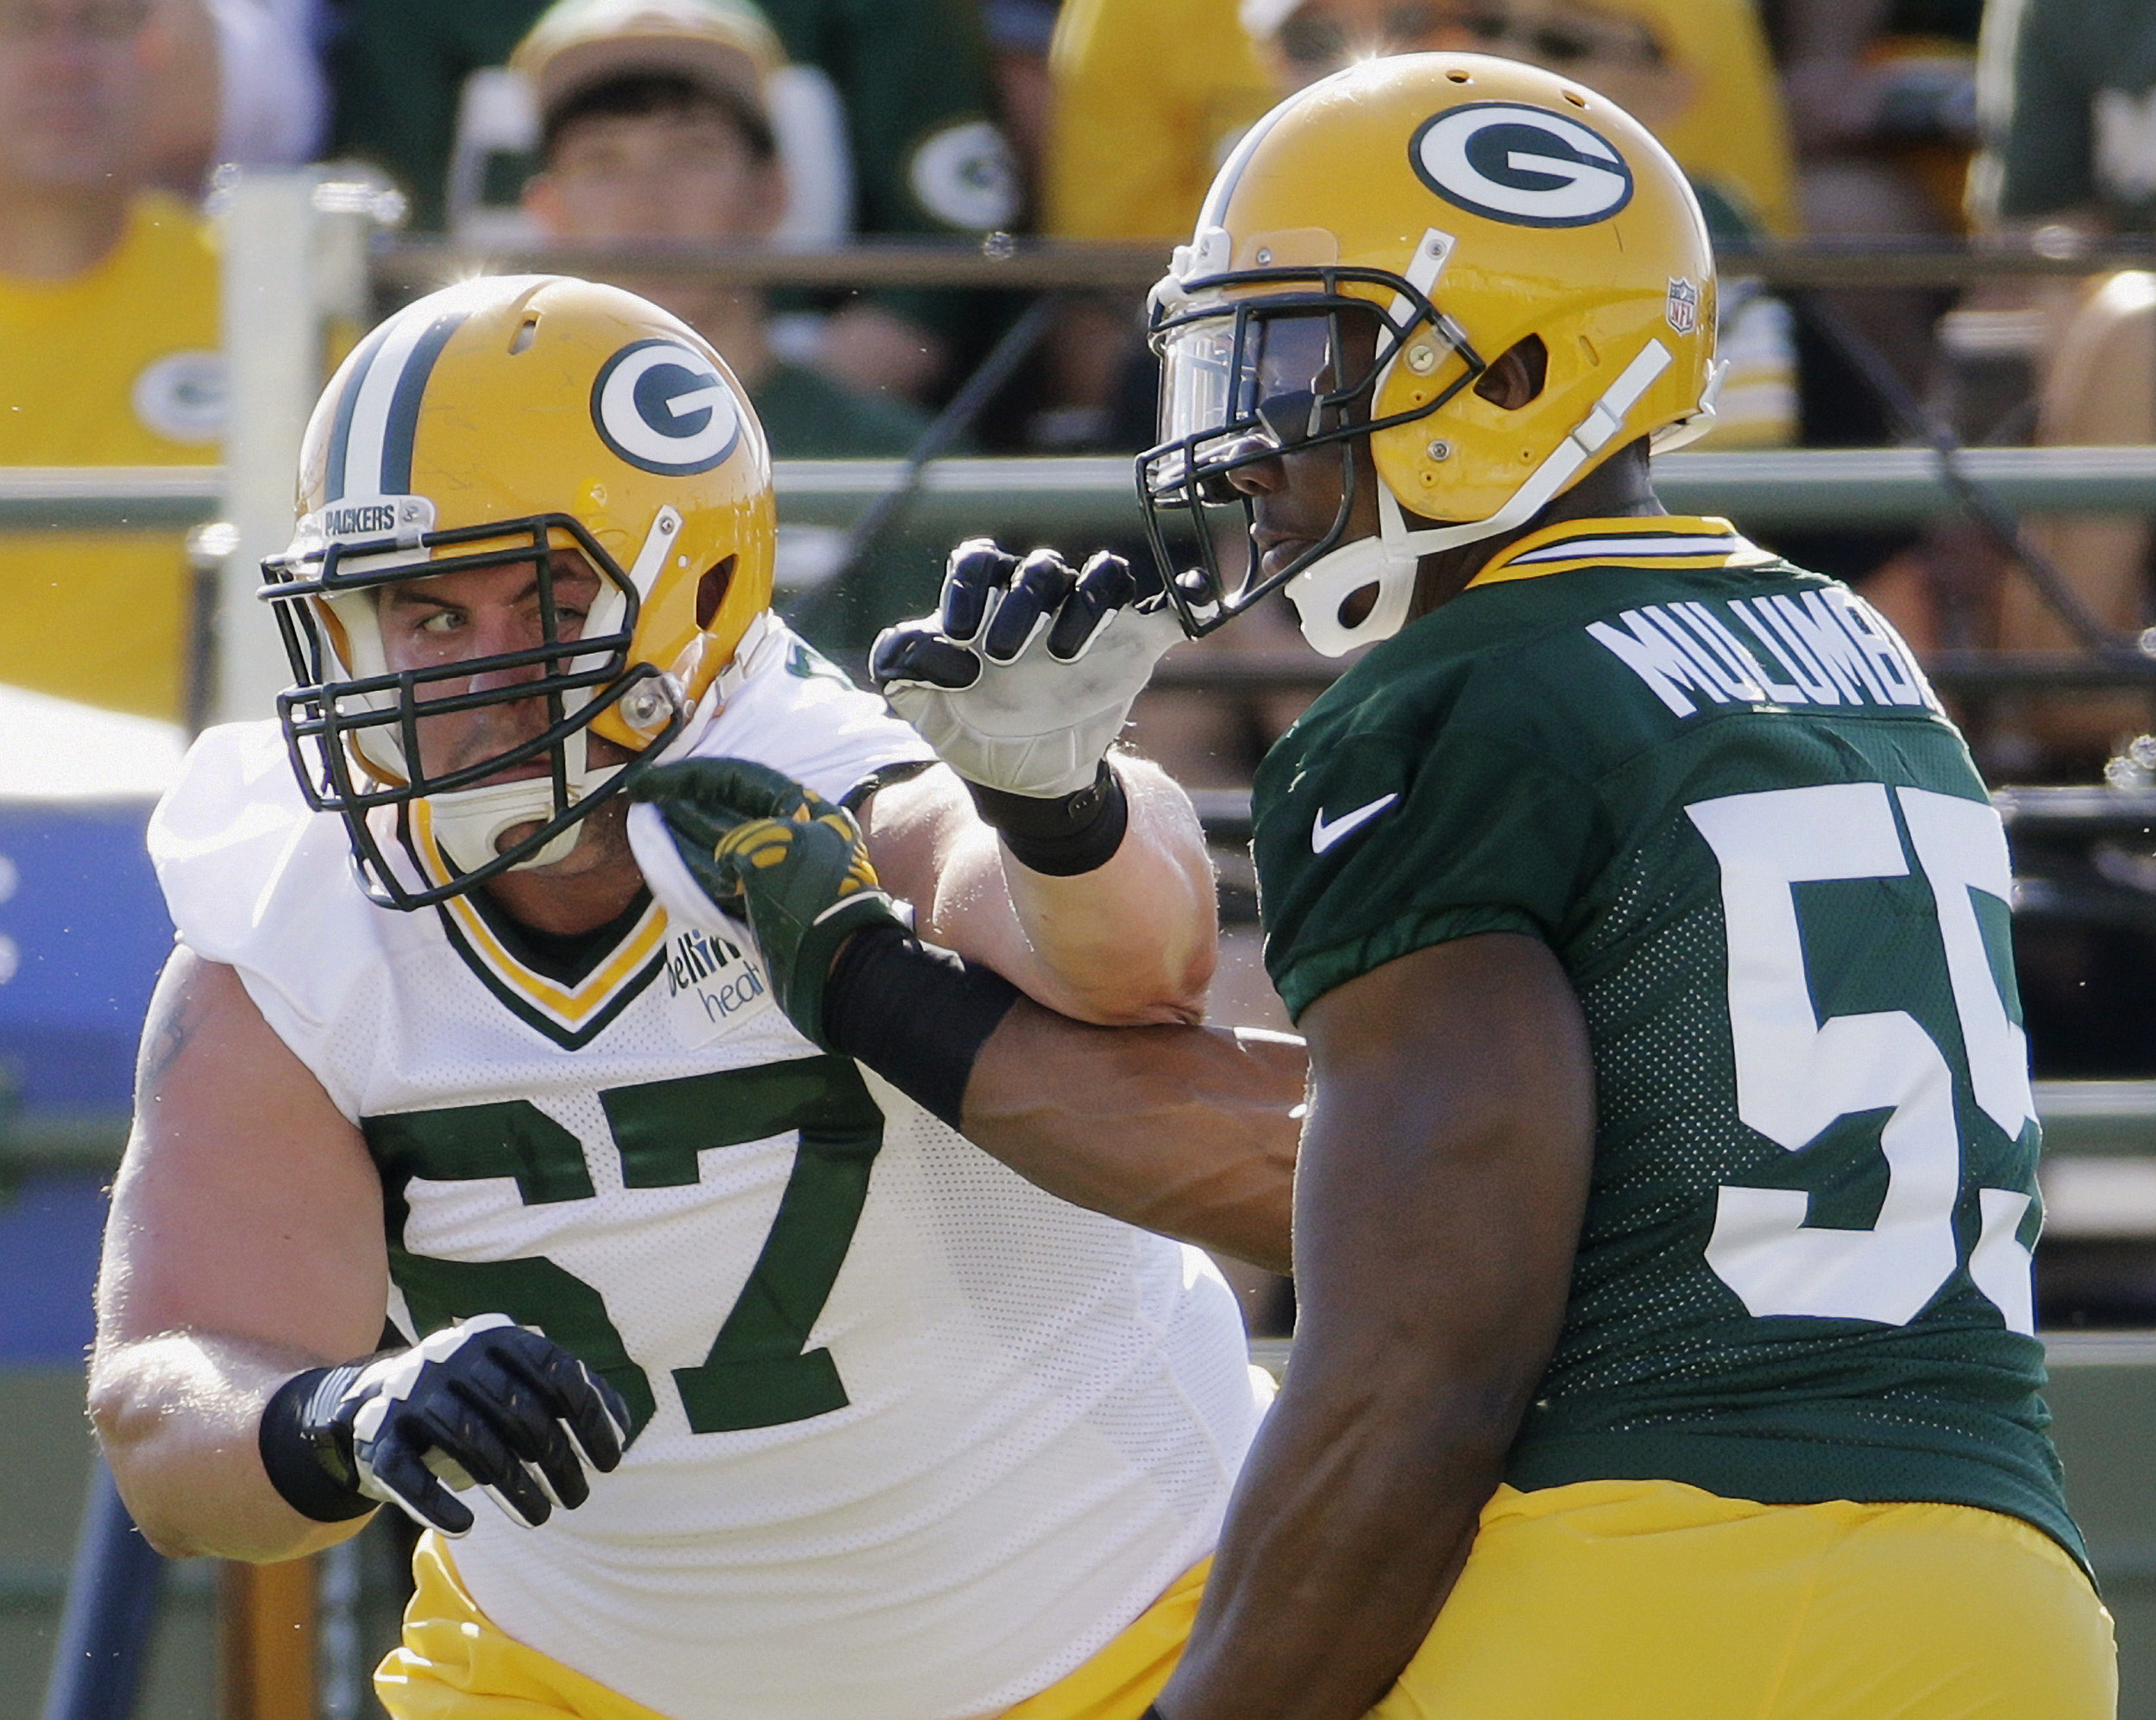 FILE - In this July 30, 2015, file photo, Green Bay Packers' Don Barclay (67) tries to block Andy Mulumba during NFL football training camp in Green Bay, Wis. Barclay has been getting first-team reps at left tackle with David Bakhtiari out. But Barclay, w